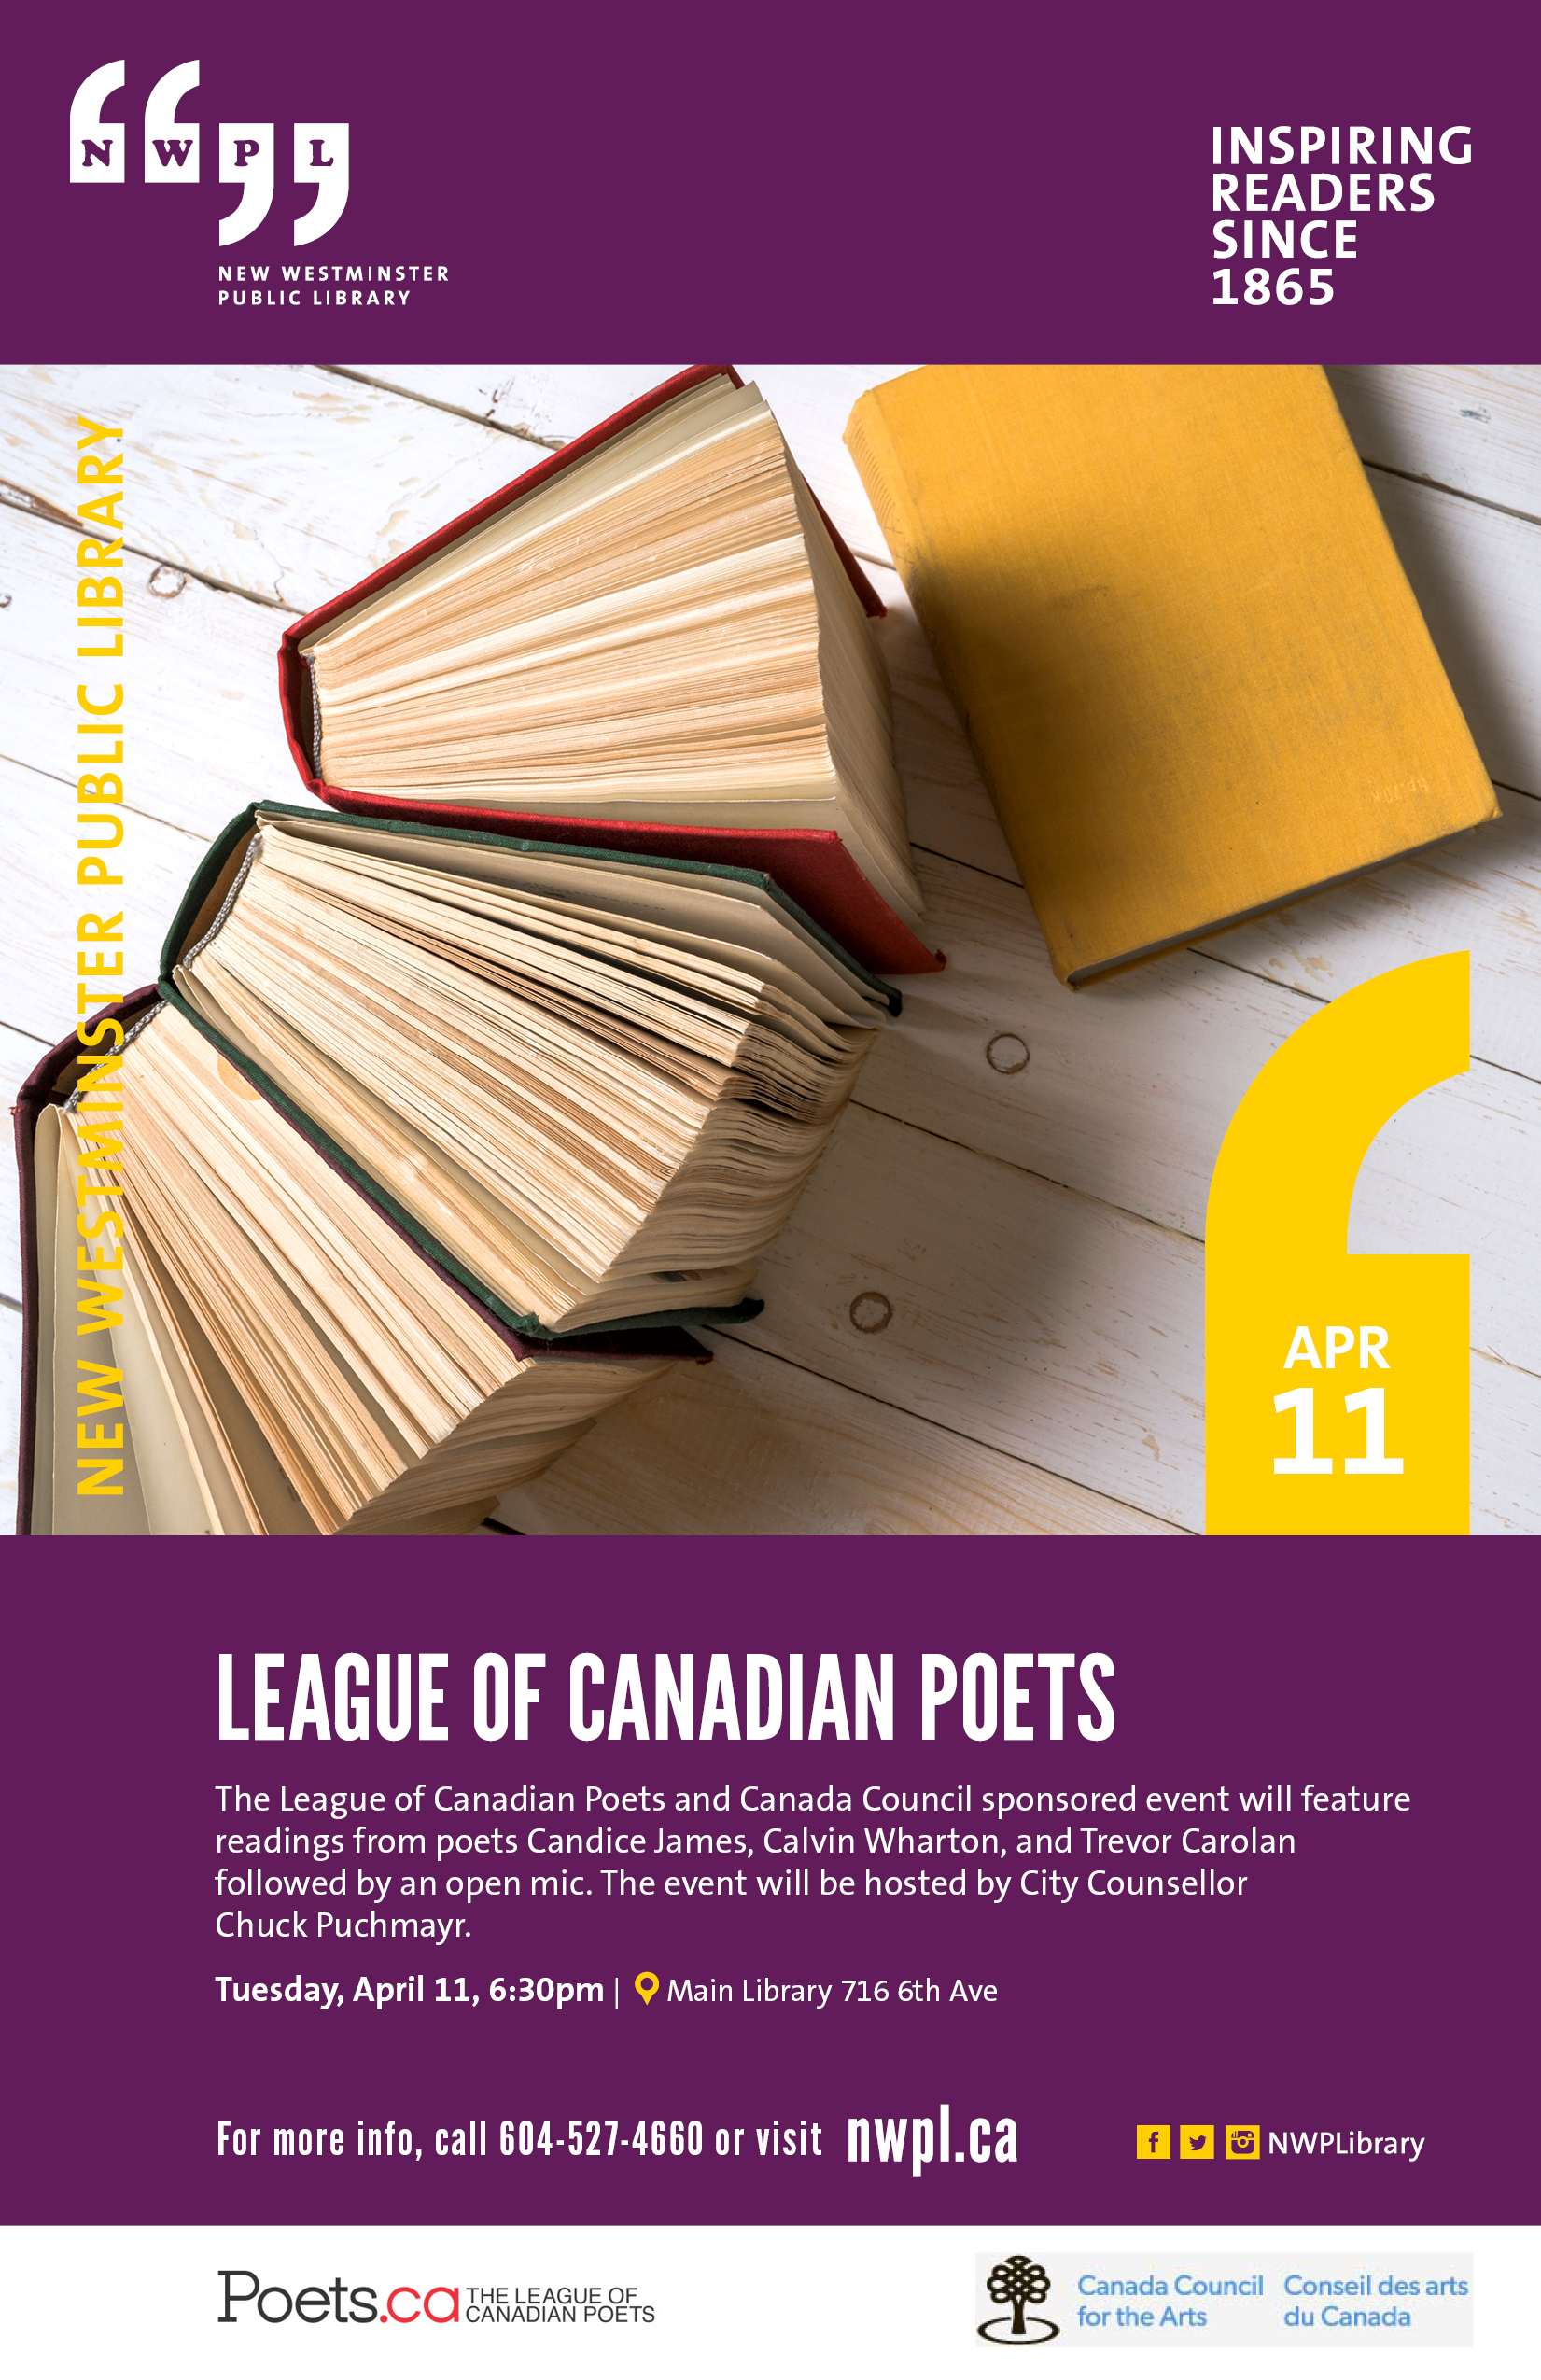 04 11 League of Canadian Poets